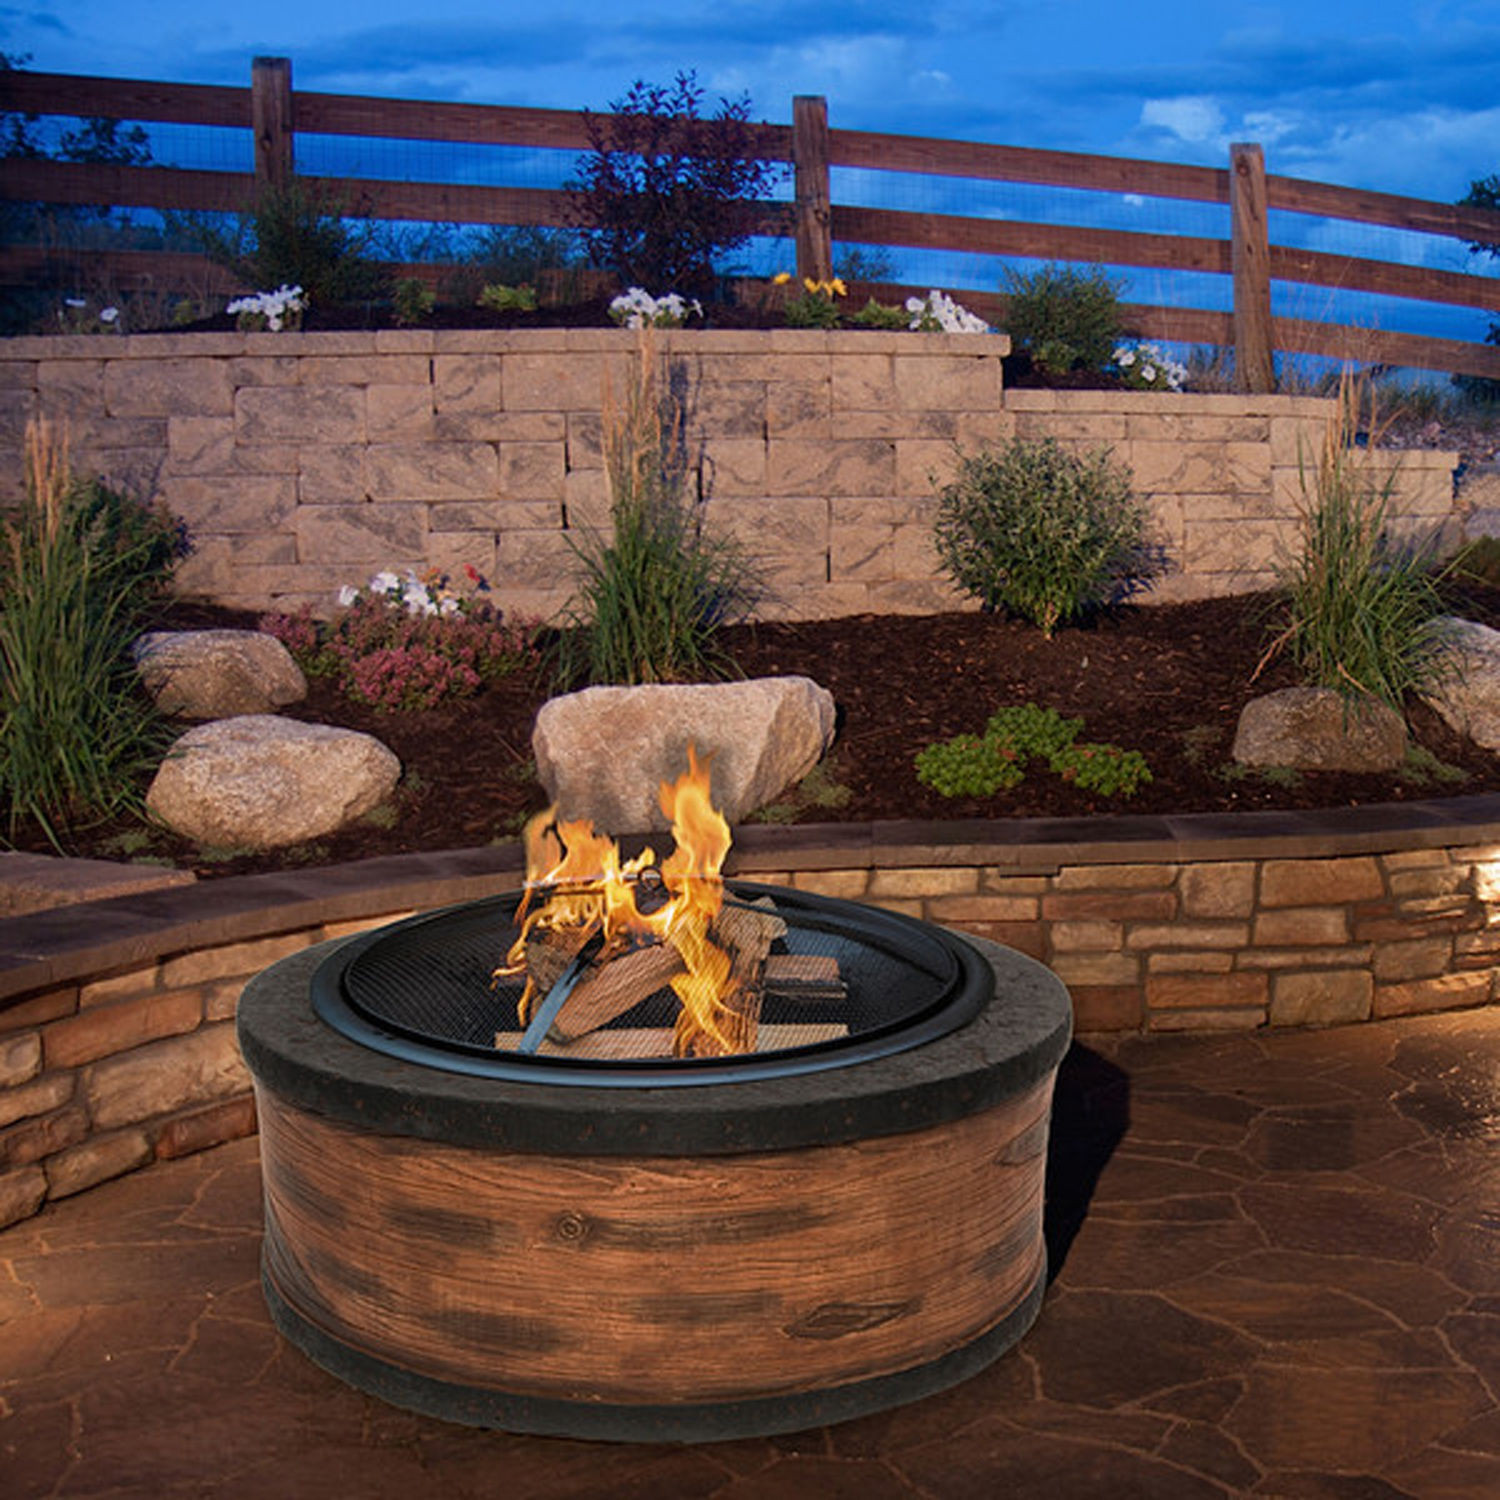 Fireplace Fire Pit  Round Fire Pit Wood Burning Fireplace Outdoor Patio Garden